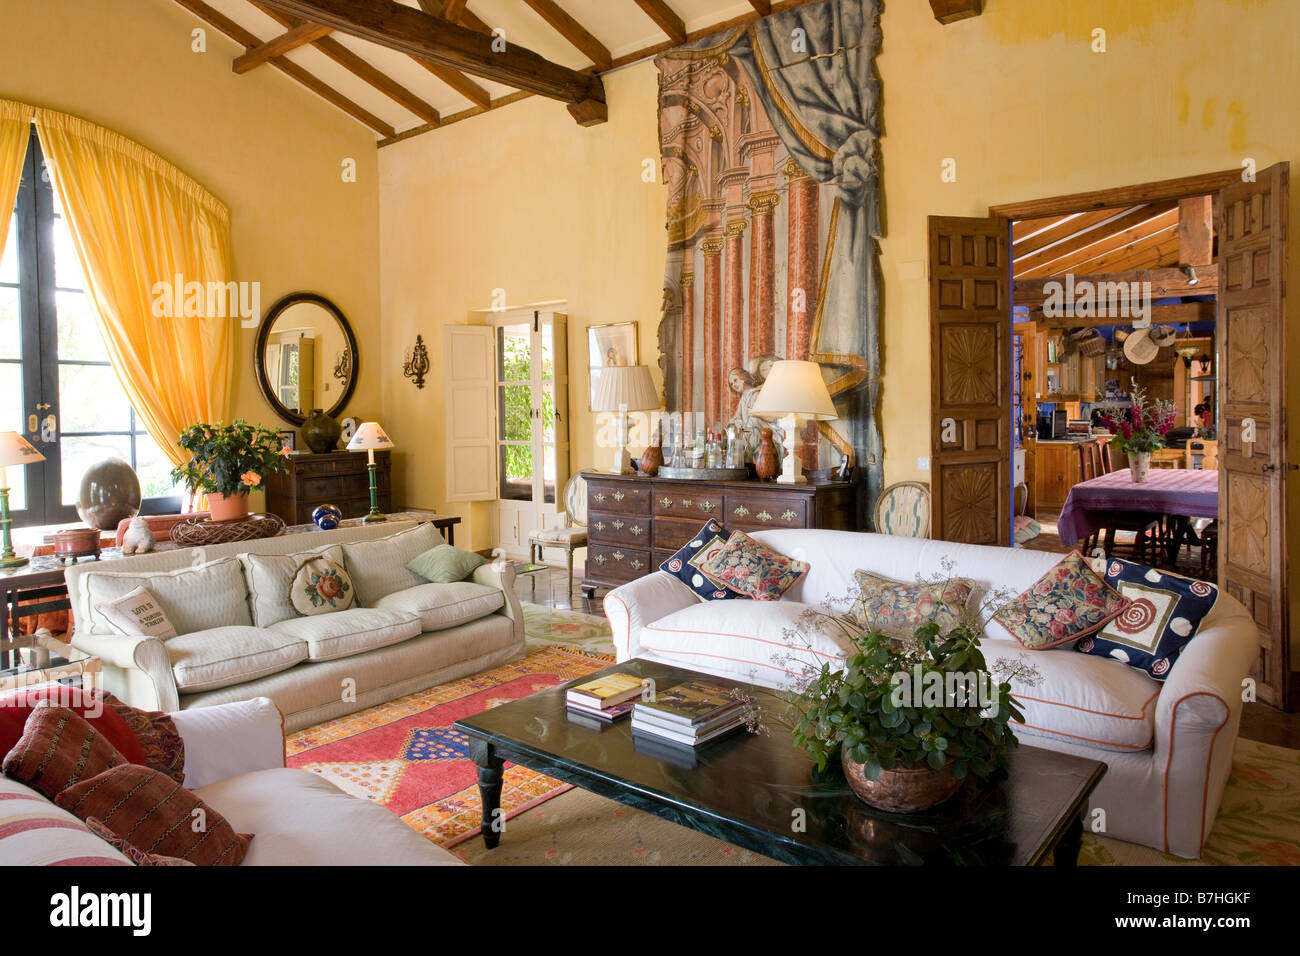 Large White Sofas In Yellow Spanish Living Room With Trompe L Oeil Stock Photo Royalty Free